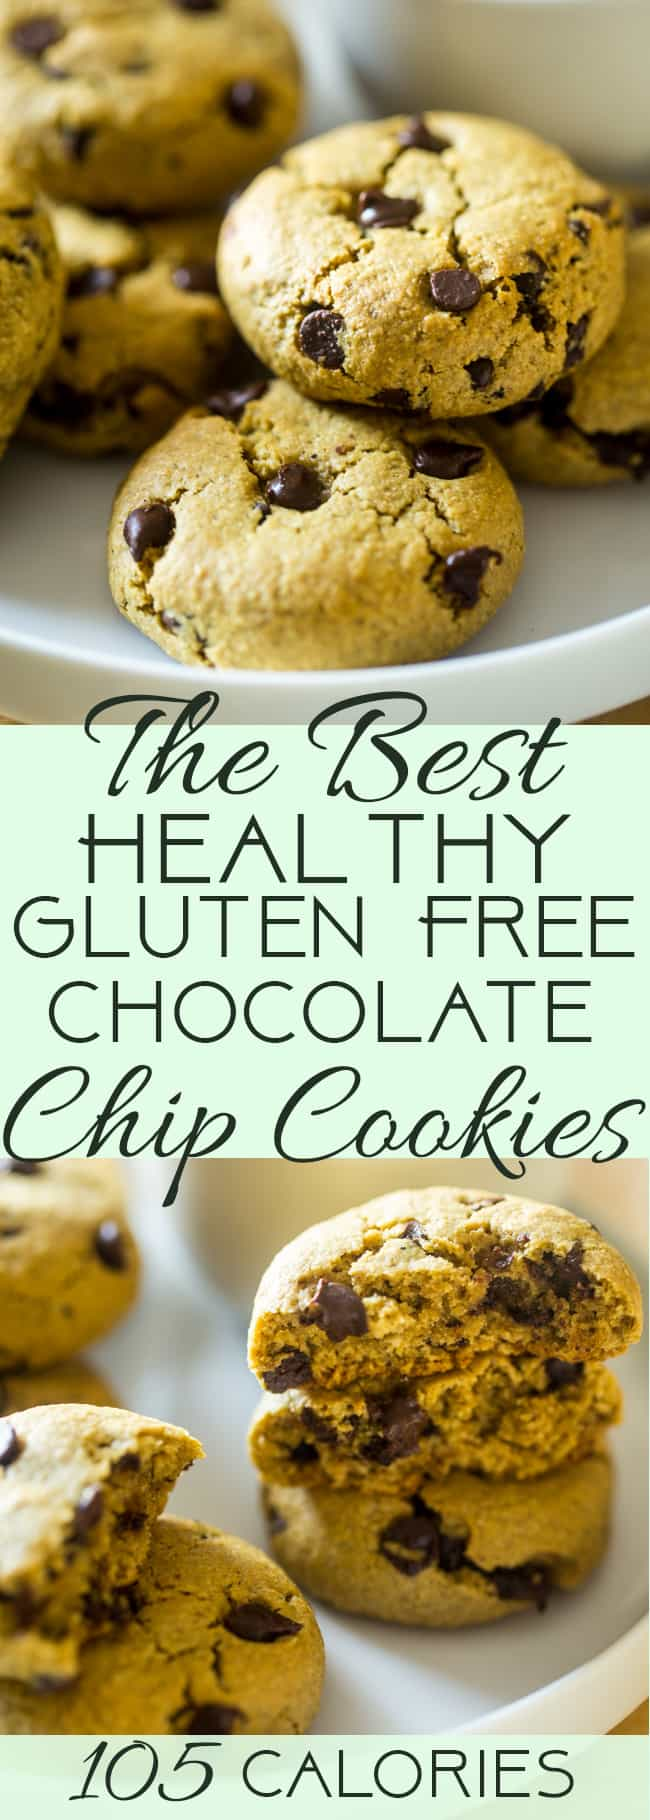 Easy Healthy Gluten Free Chocolate Chip Cookies - SO big, soft and chewy that you would never believe they are butter and oil free and use a secret, heart-healthy ingredient to make them low fat and only 105 calories! | Foodfaithfitness.com | @FoodFaithFit | chewy gluten free chocolate chip cookies. gluten free chocolate chip cookies recipe. simple gluten free chocolate chip cookies. soft gluten free chocolate chip cookies. homemade gluten free chocolate chip cookies. healthy chocolate chip cookies. 100 calorie chocolate chip cookies. easy chocolate chip cookies. chocolate chip cookies with avocado. avocado dessert recipes.